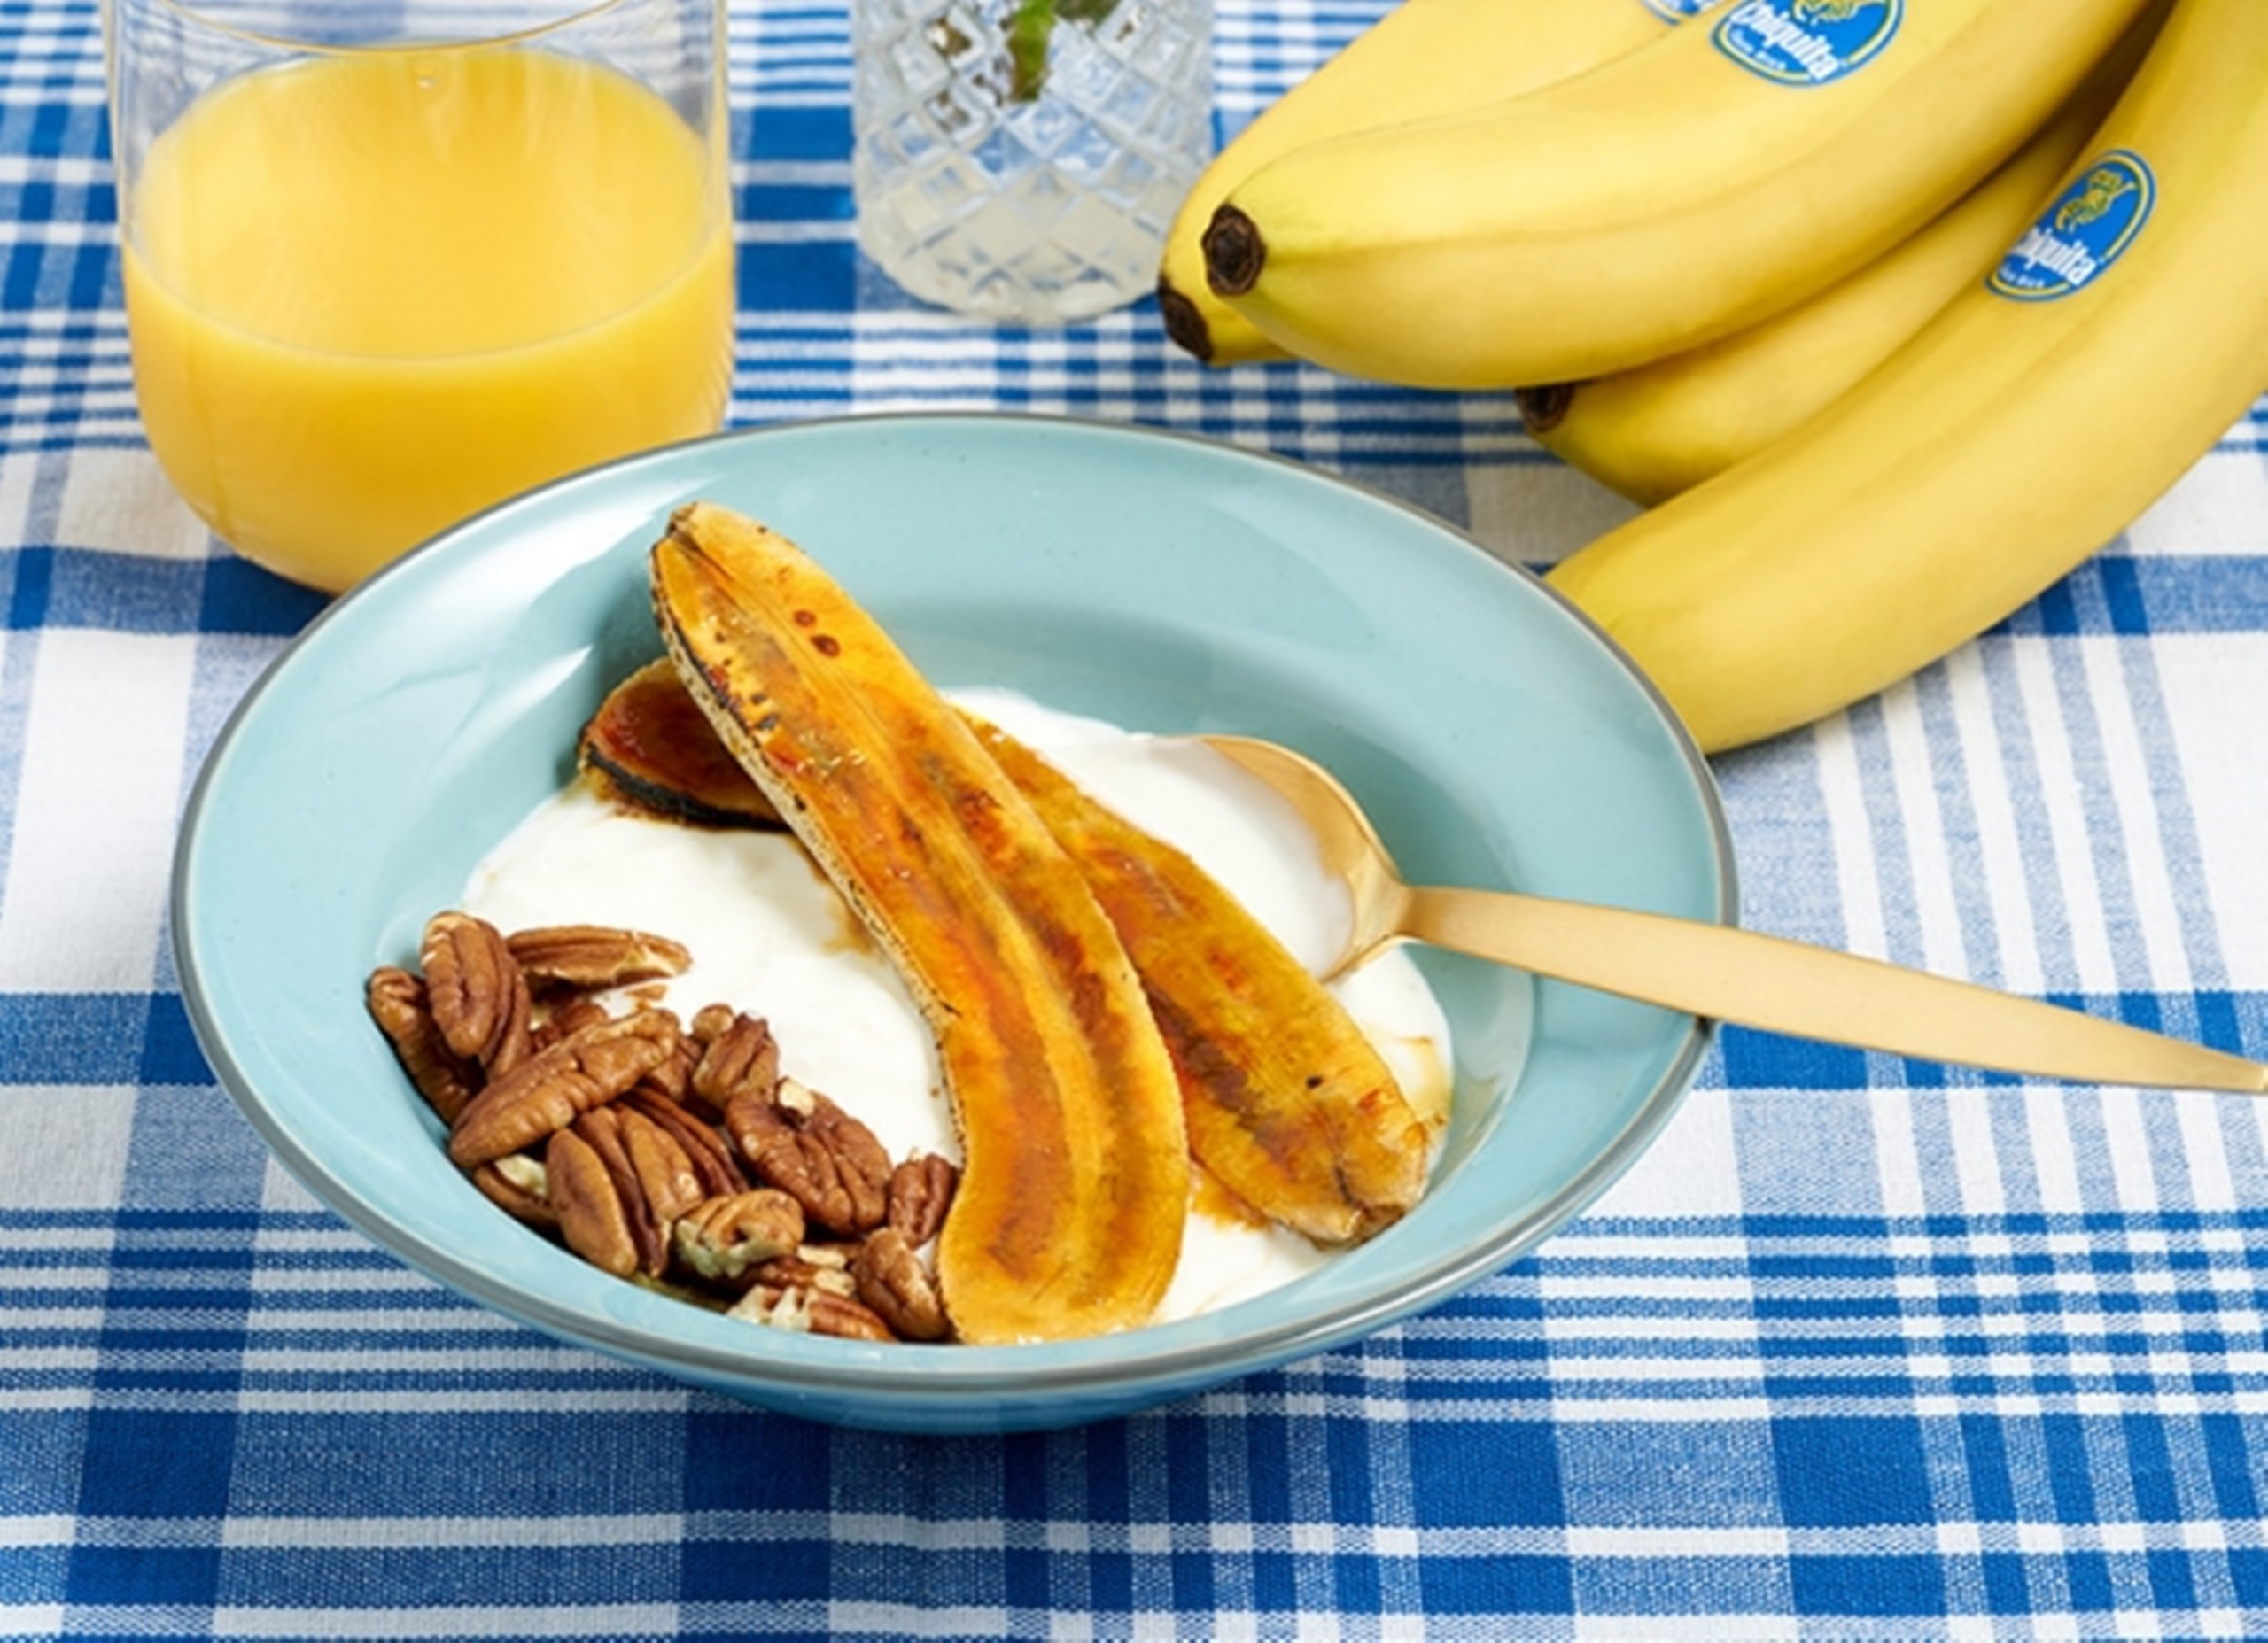 Maple_Grilled_Bananas_with_Yoghurt_and_Pecans_3_RE07_dm.jpg